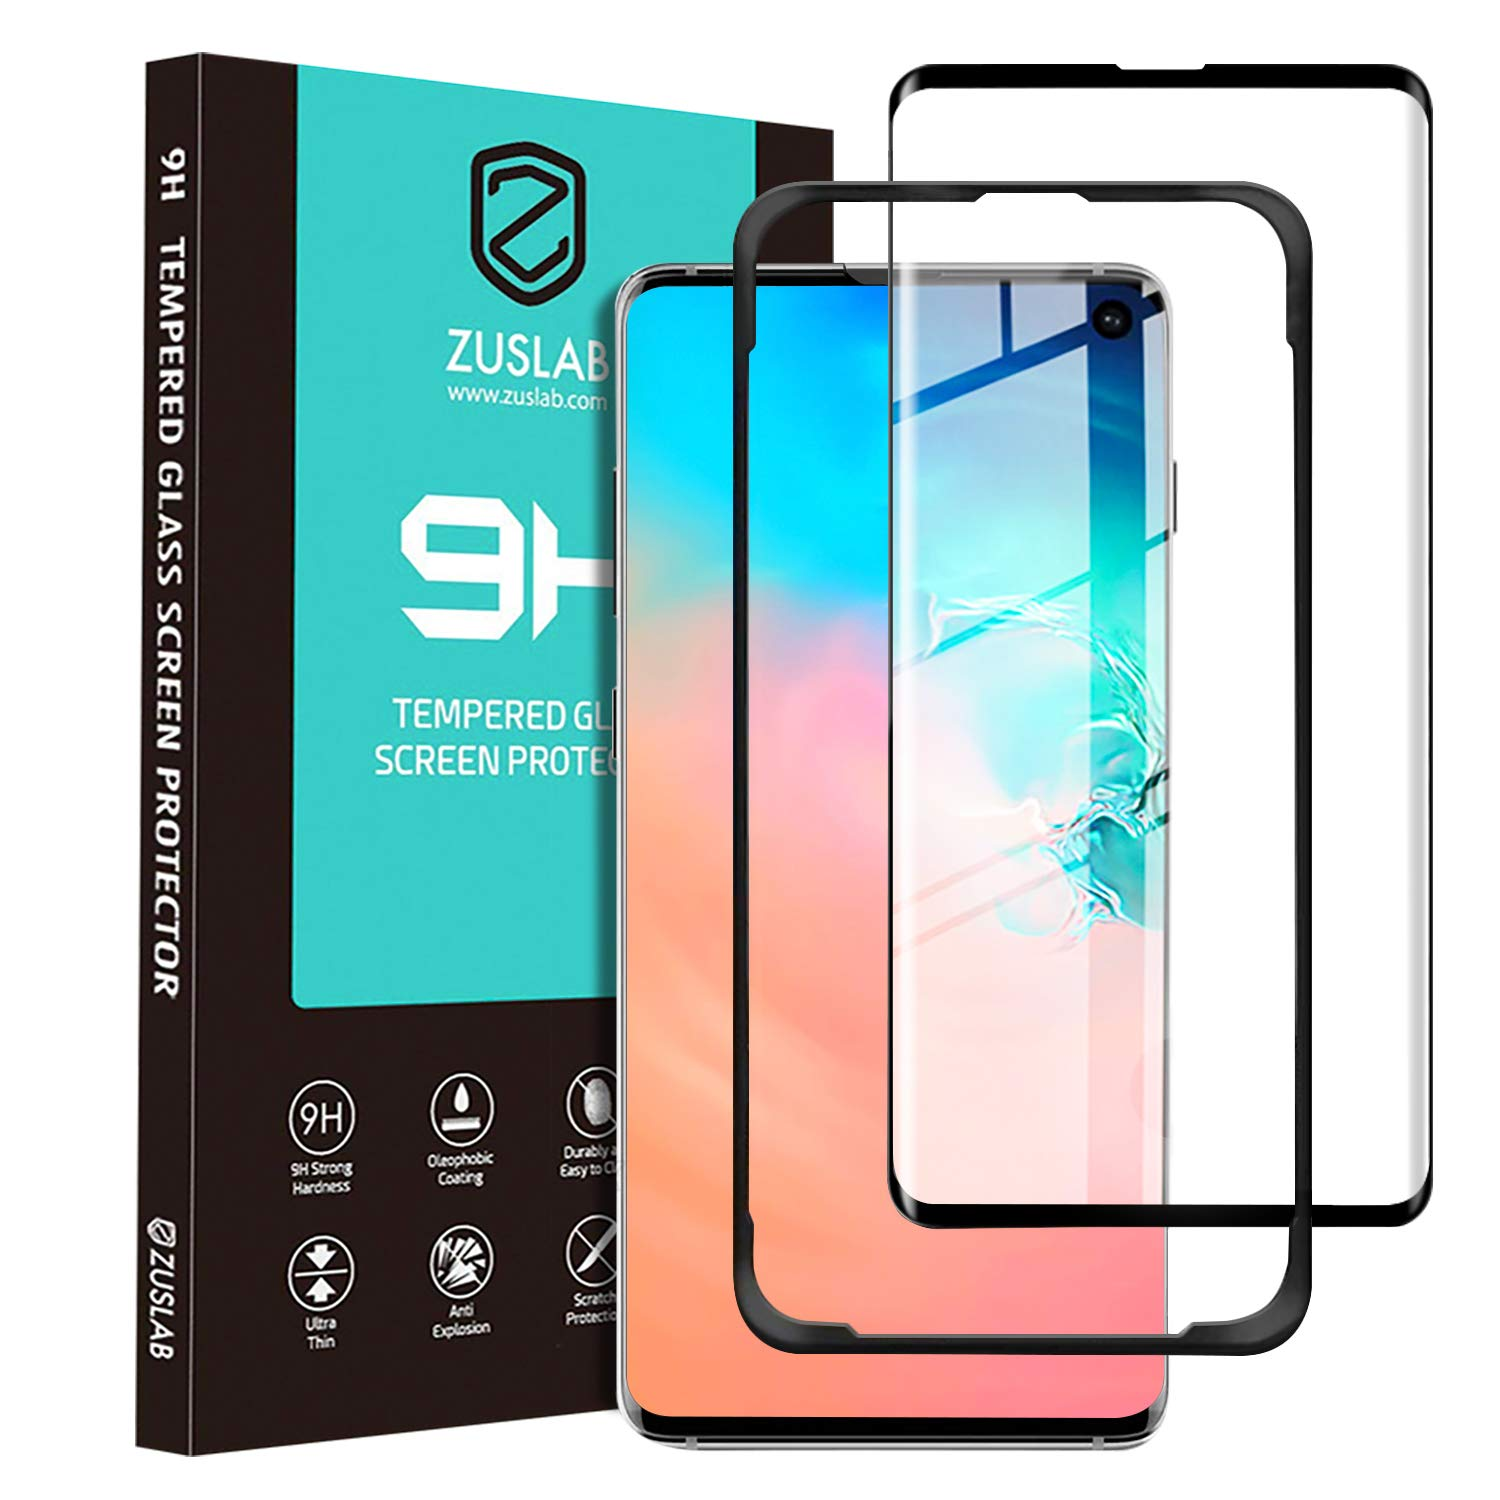 Zuslab Galaxy S10 Screen Protector Tempered Glass [Sensitive Fingerpirnt Recognition] [Easy Bubble-Free Installation with Tool] ...